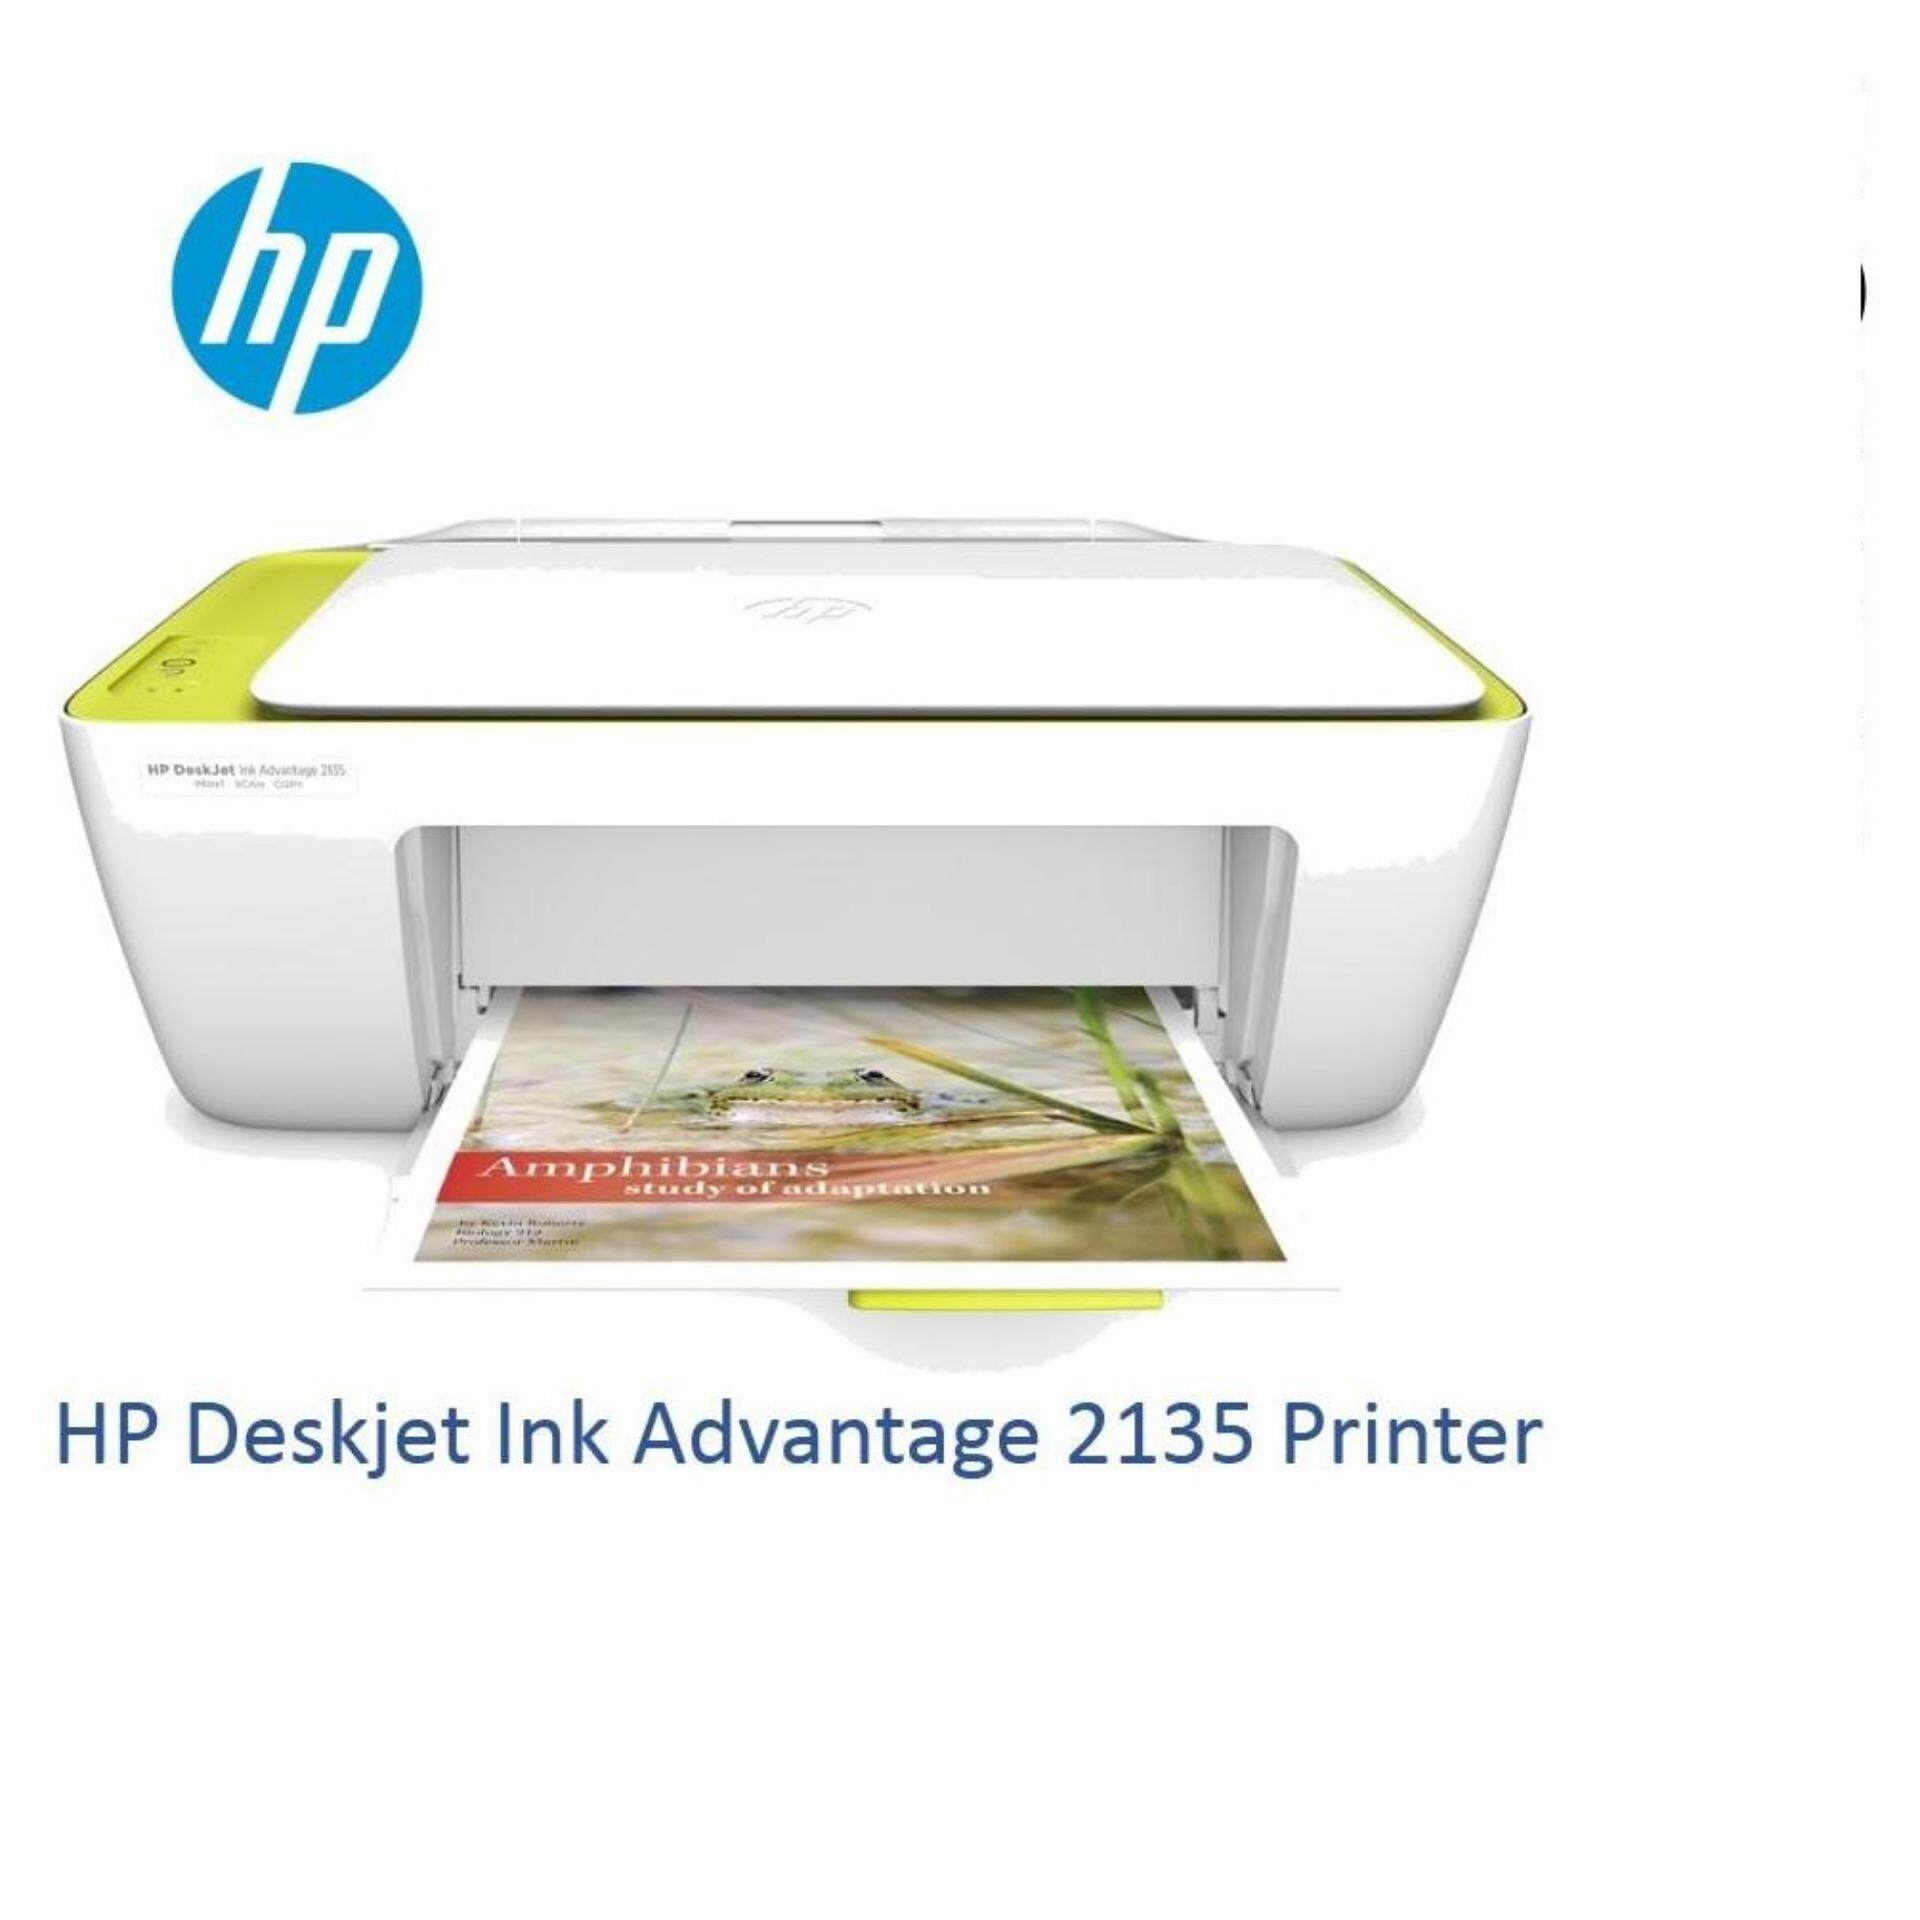 Hp Deskjet Gt 5820 All In One Printer Inktank Print Scan Copy Tinta Original Gt51 Black M0h57a 90ml Refill Gt5810 Ink Advantage 2135 Colour Malaysia